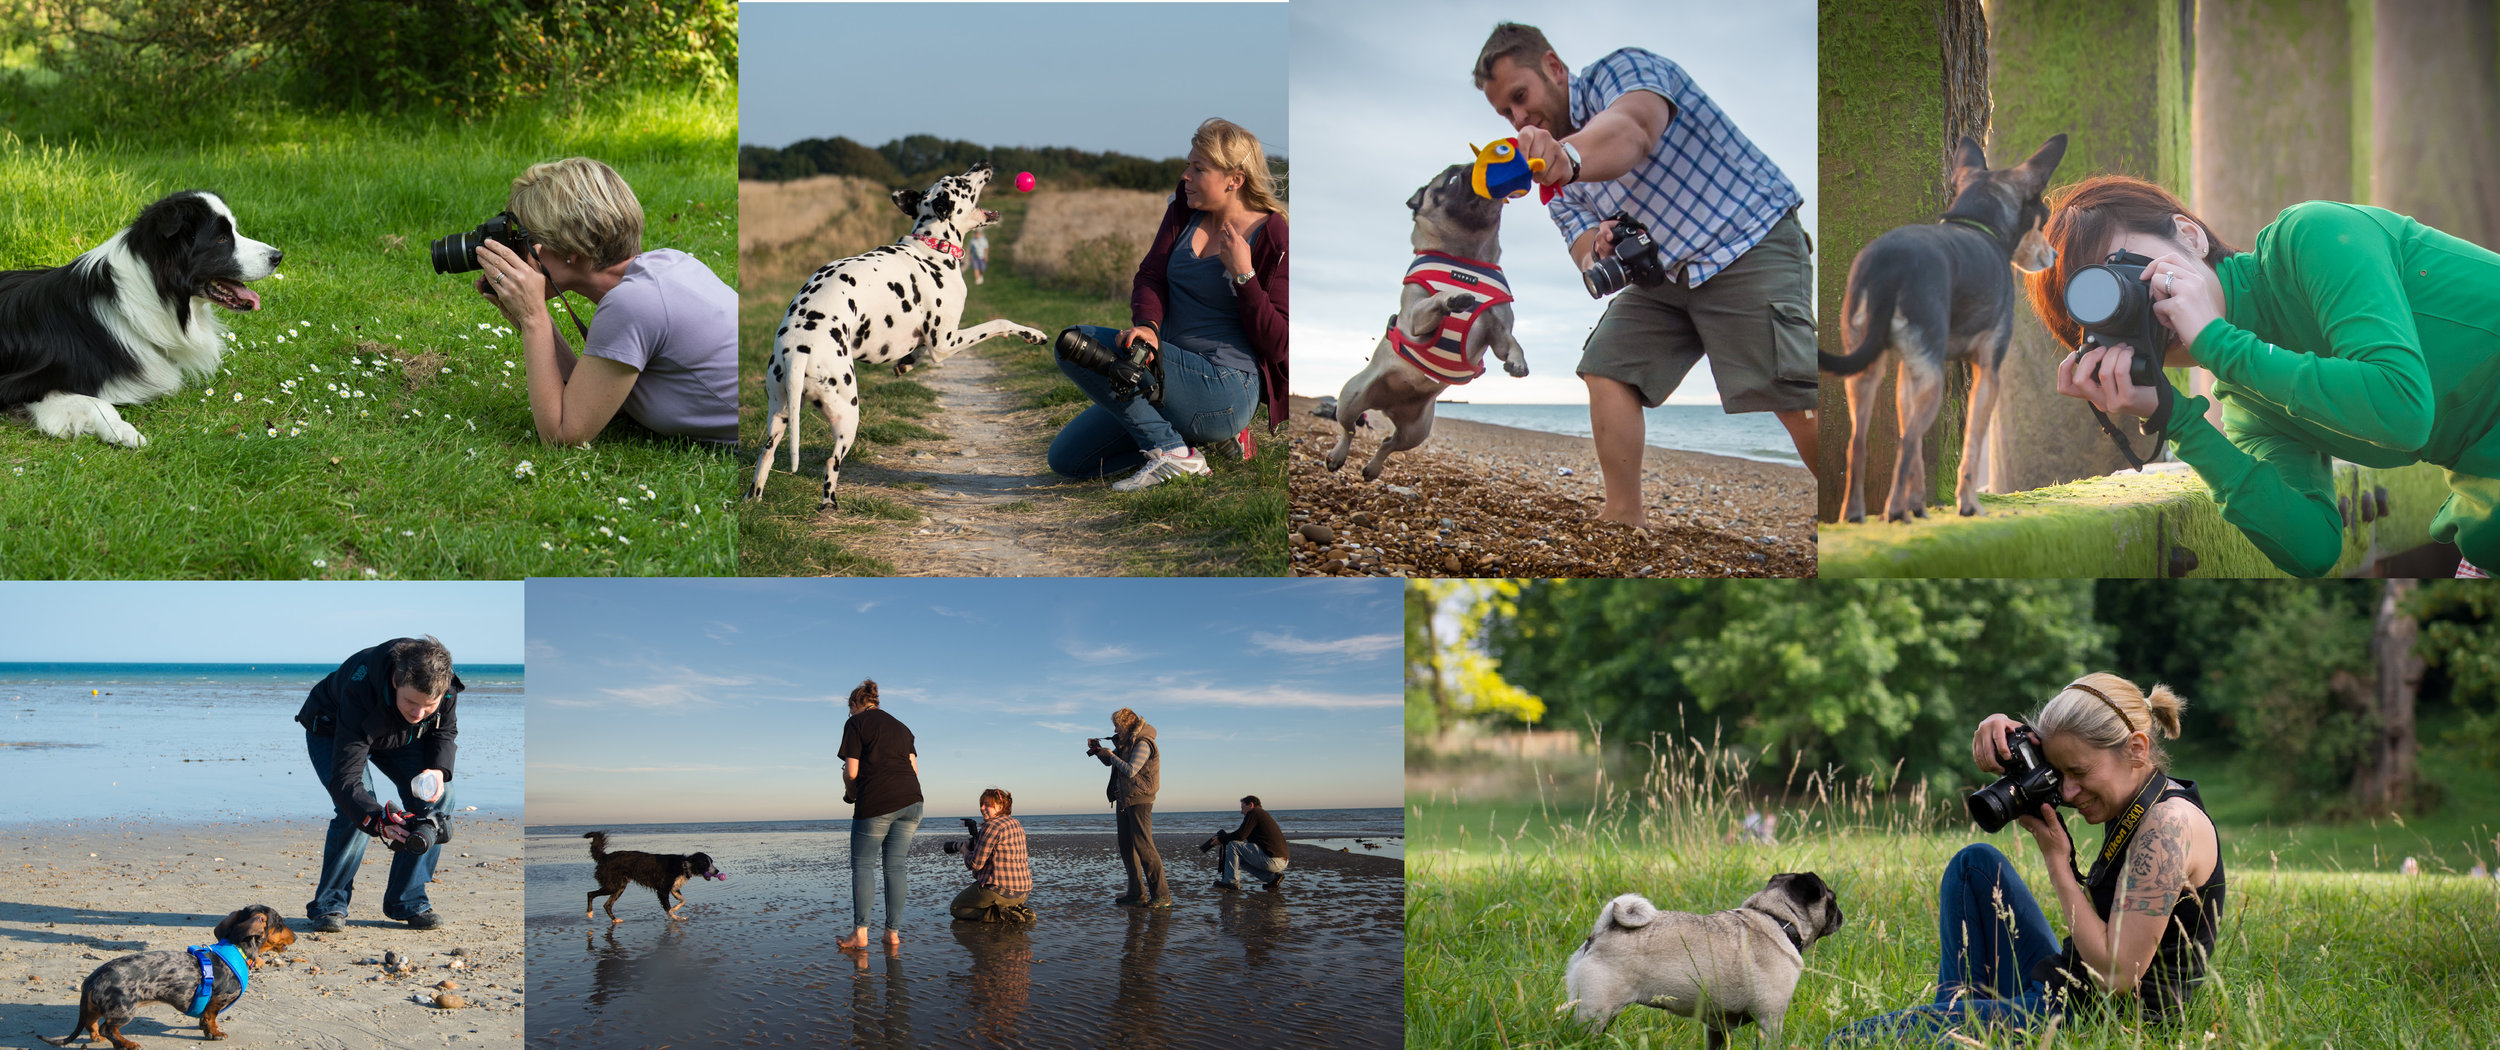 Learn Pet Photography - How To Photograph Dogs - Pet Photography workshop